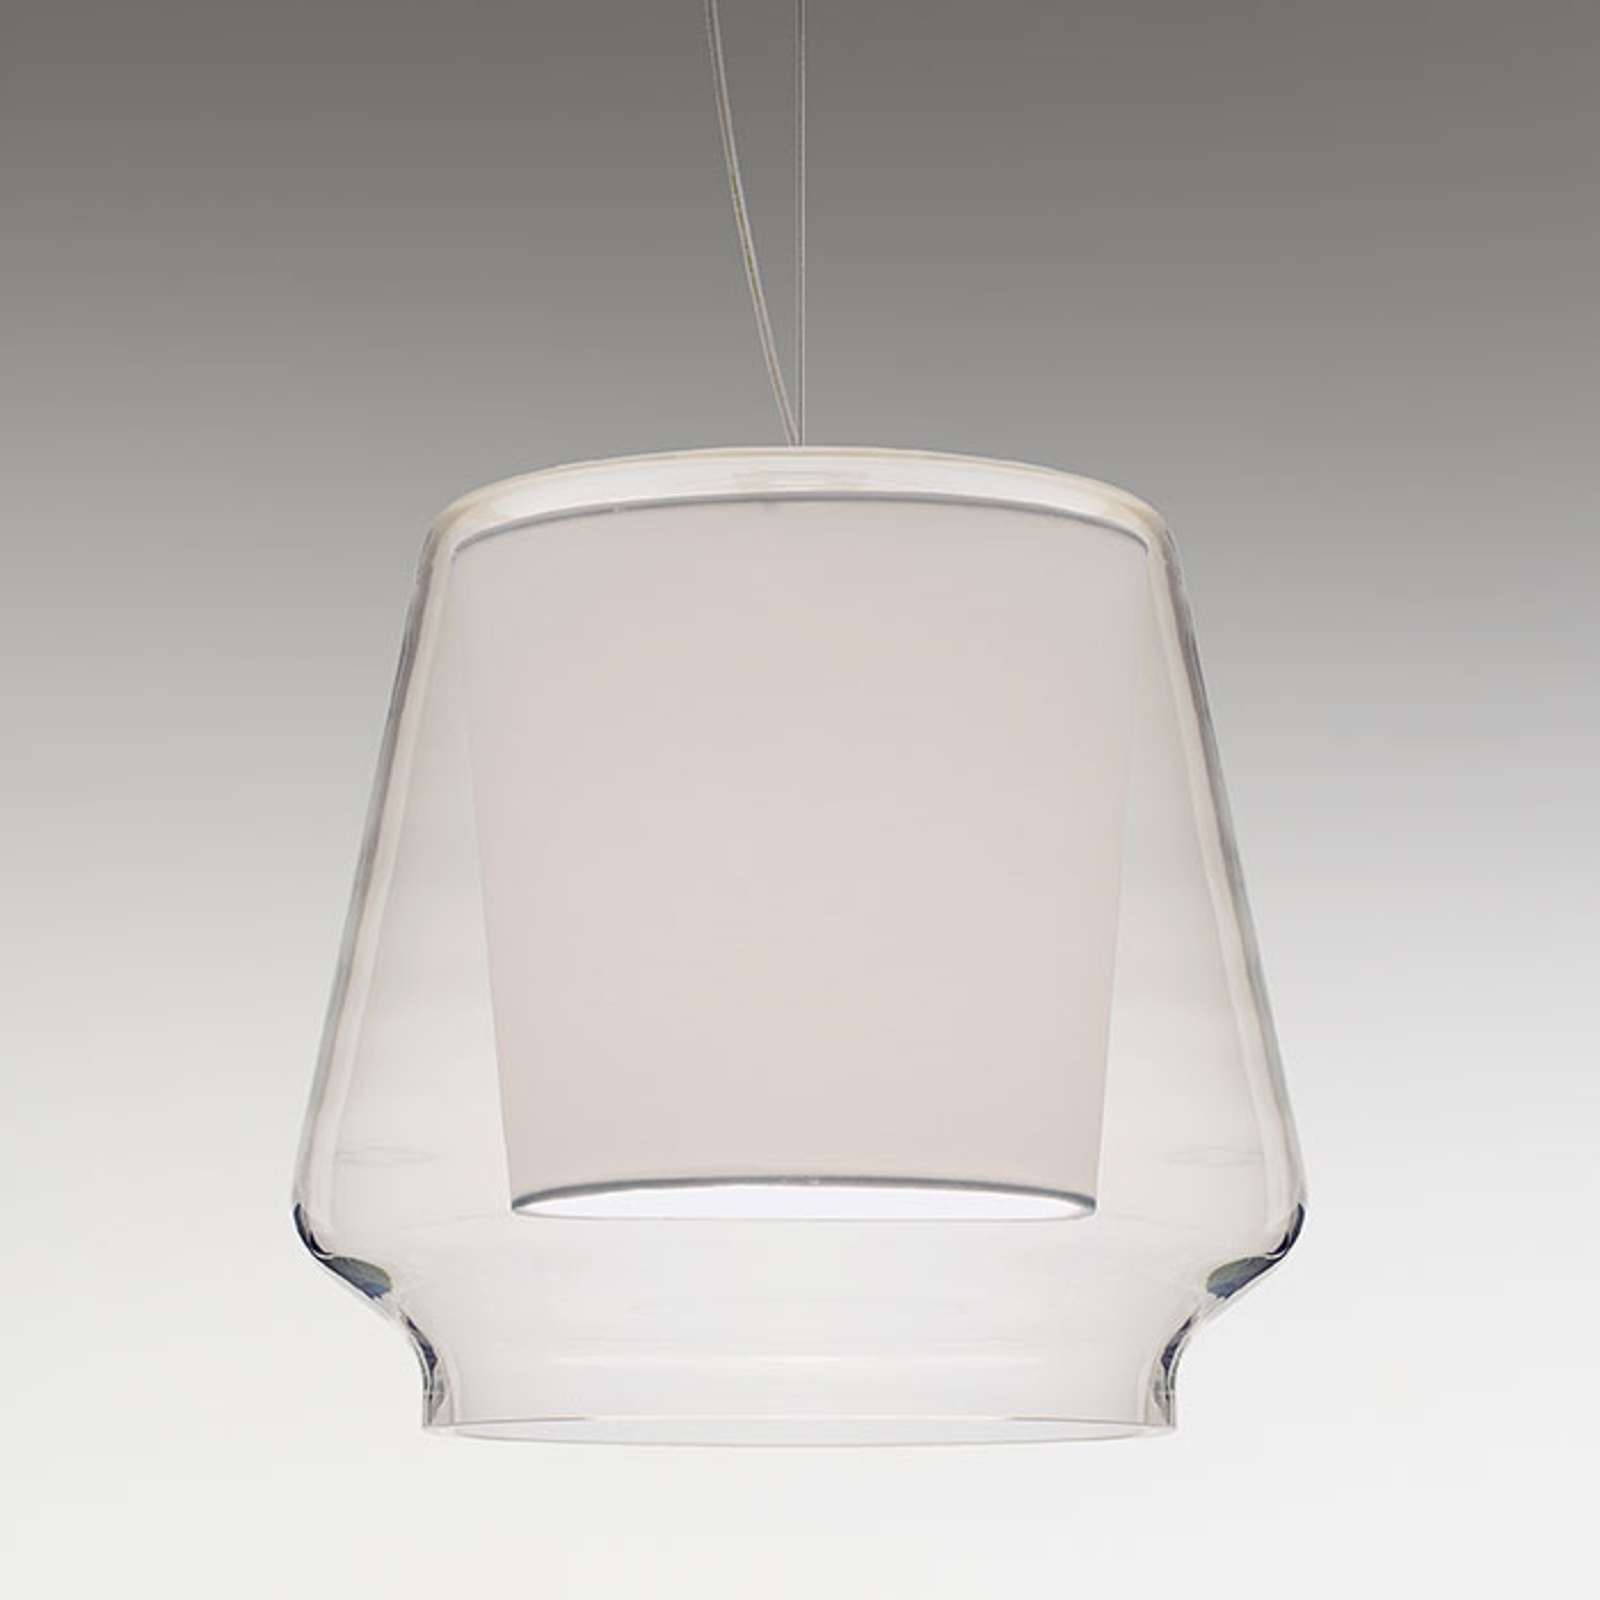 Casablanca Aleve S - belle suspension en verre